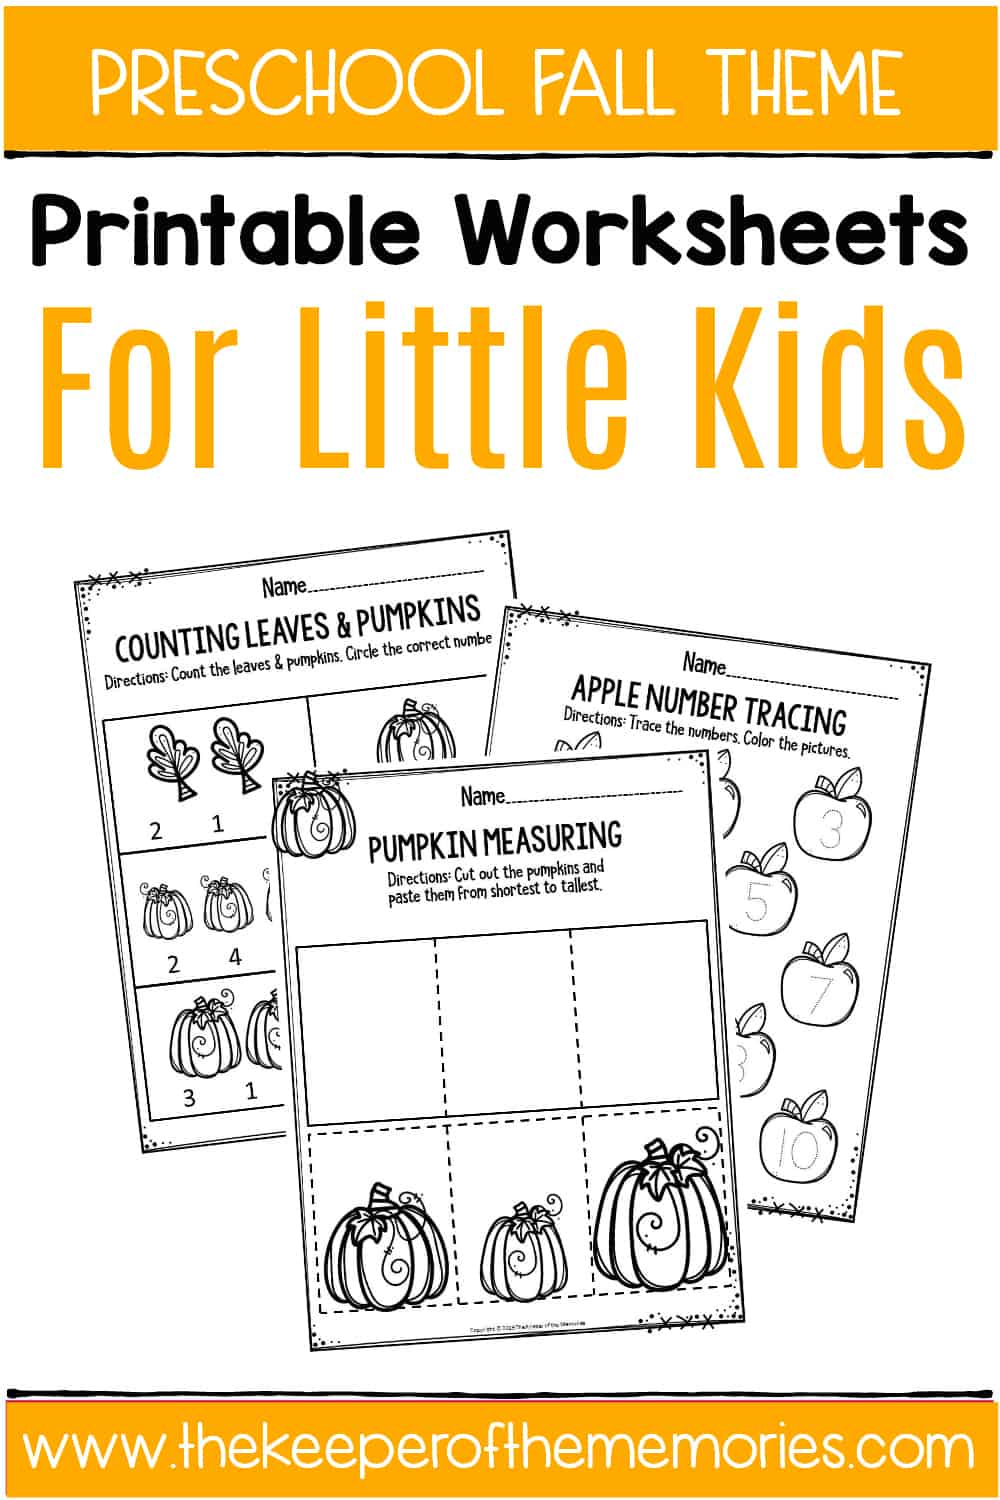 Fall Printable Preschool Worksheets - The Keeper of the ...